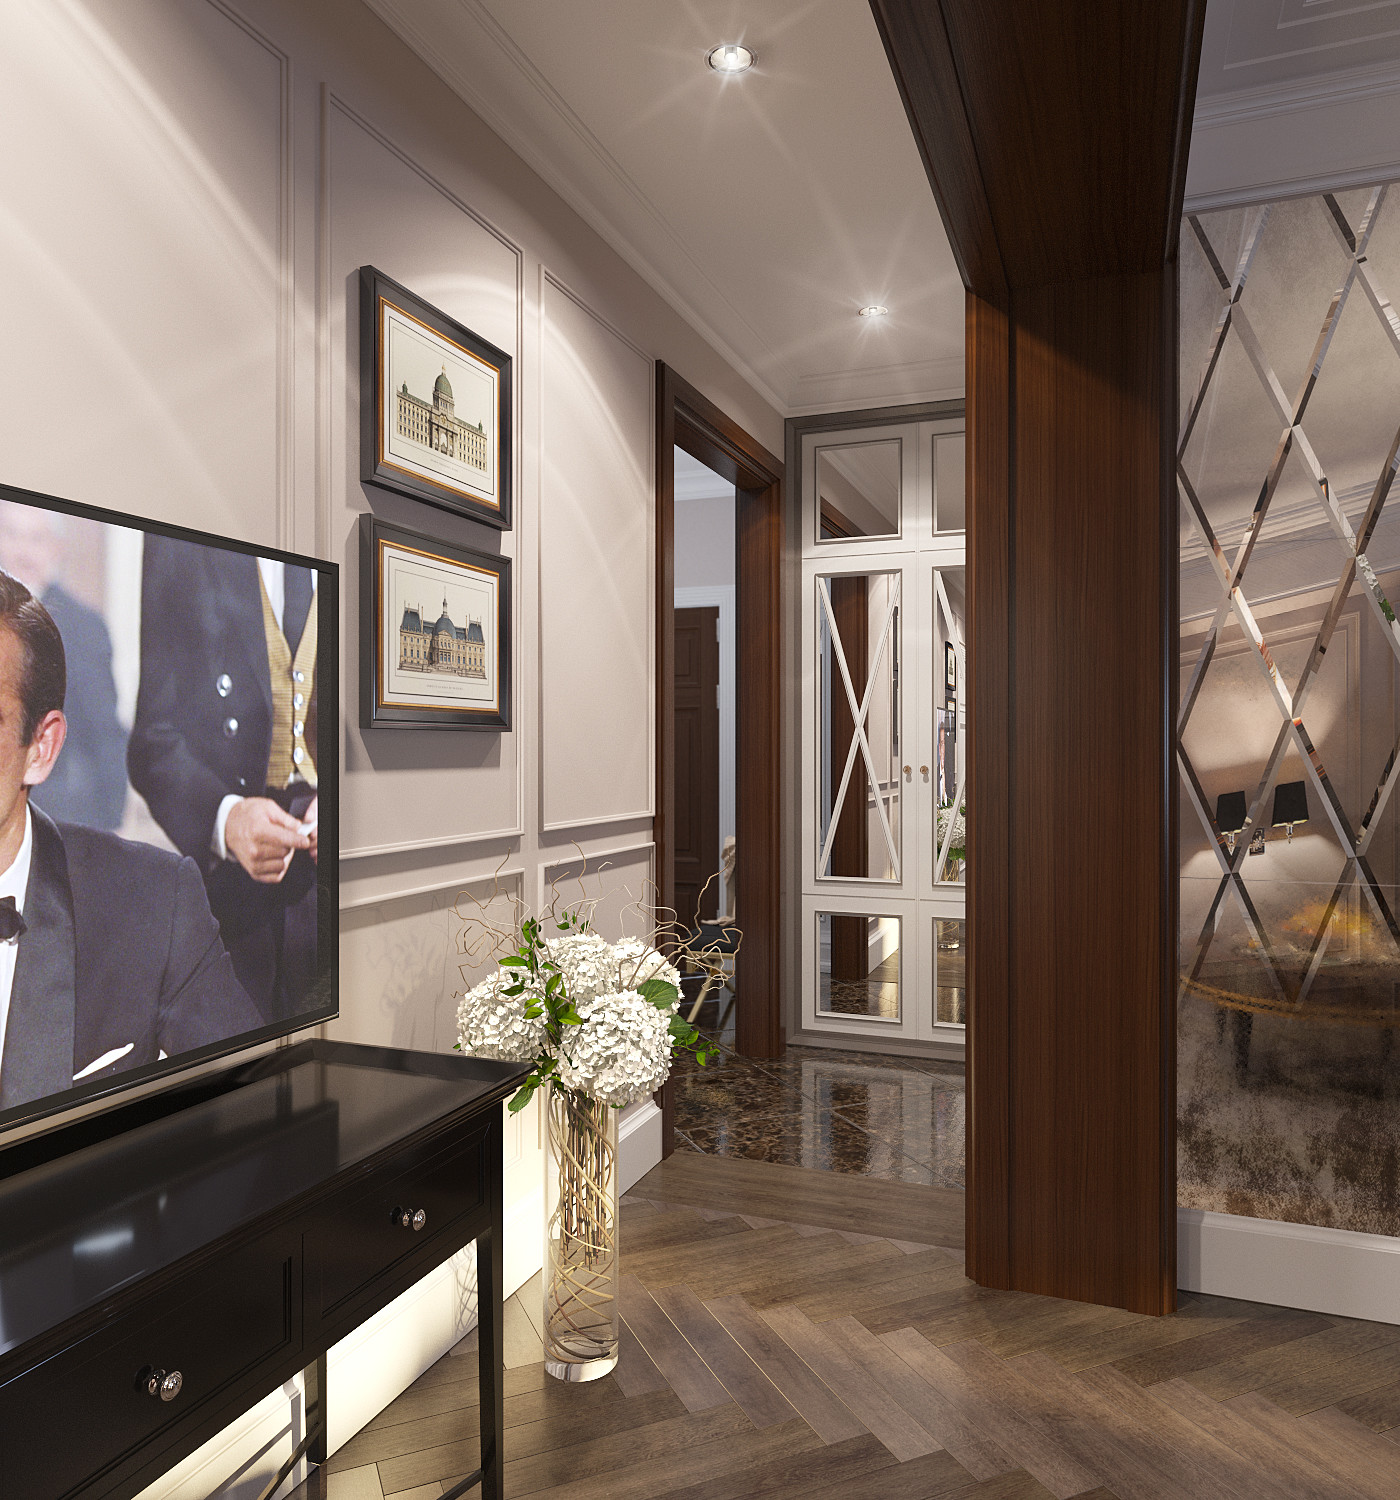 ArtStation - Project of Interiors at flat at ... on home office area design, sitting for a bedroom design, home master bedroom design, home bar counter design, home front entrance design,